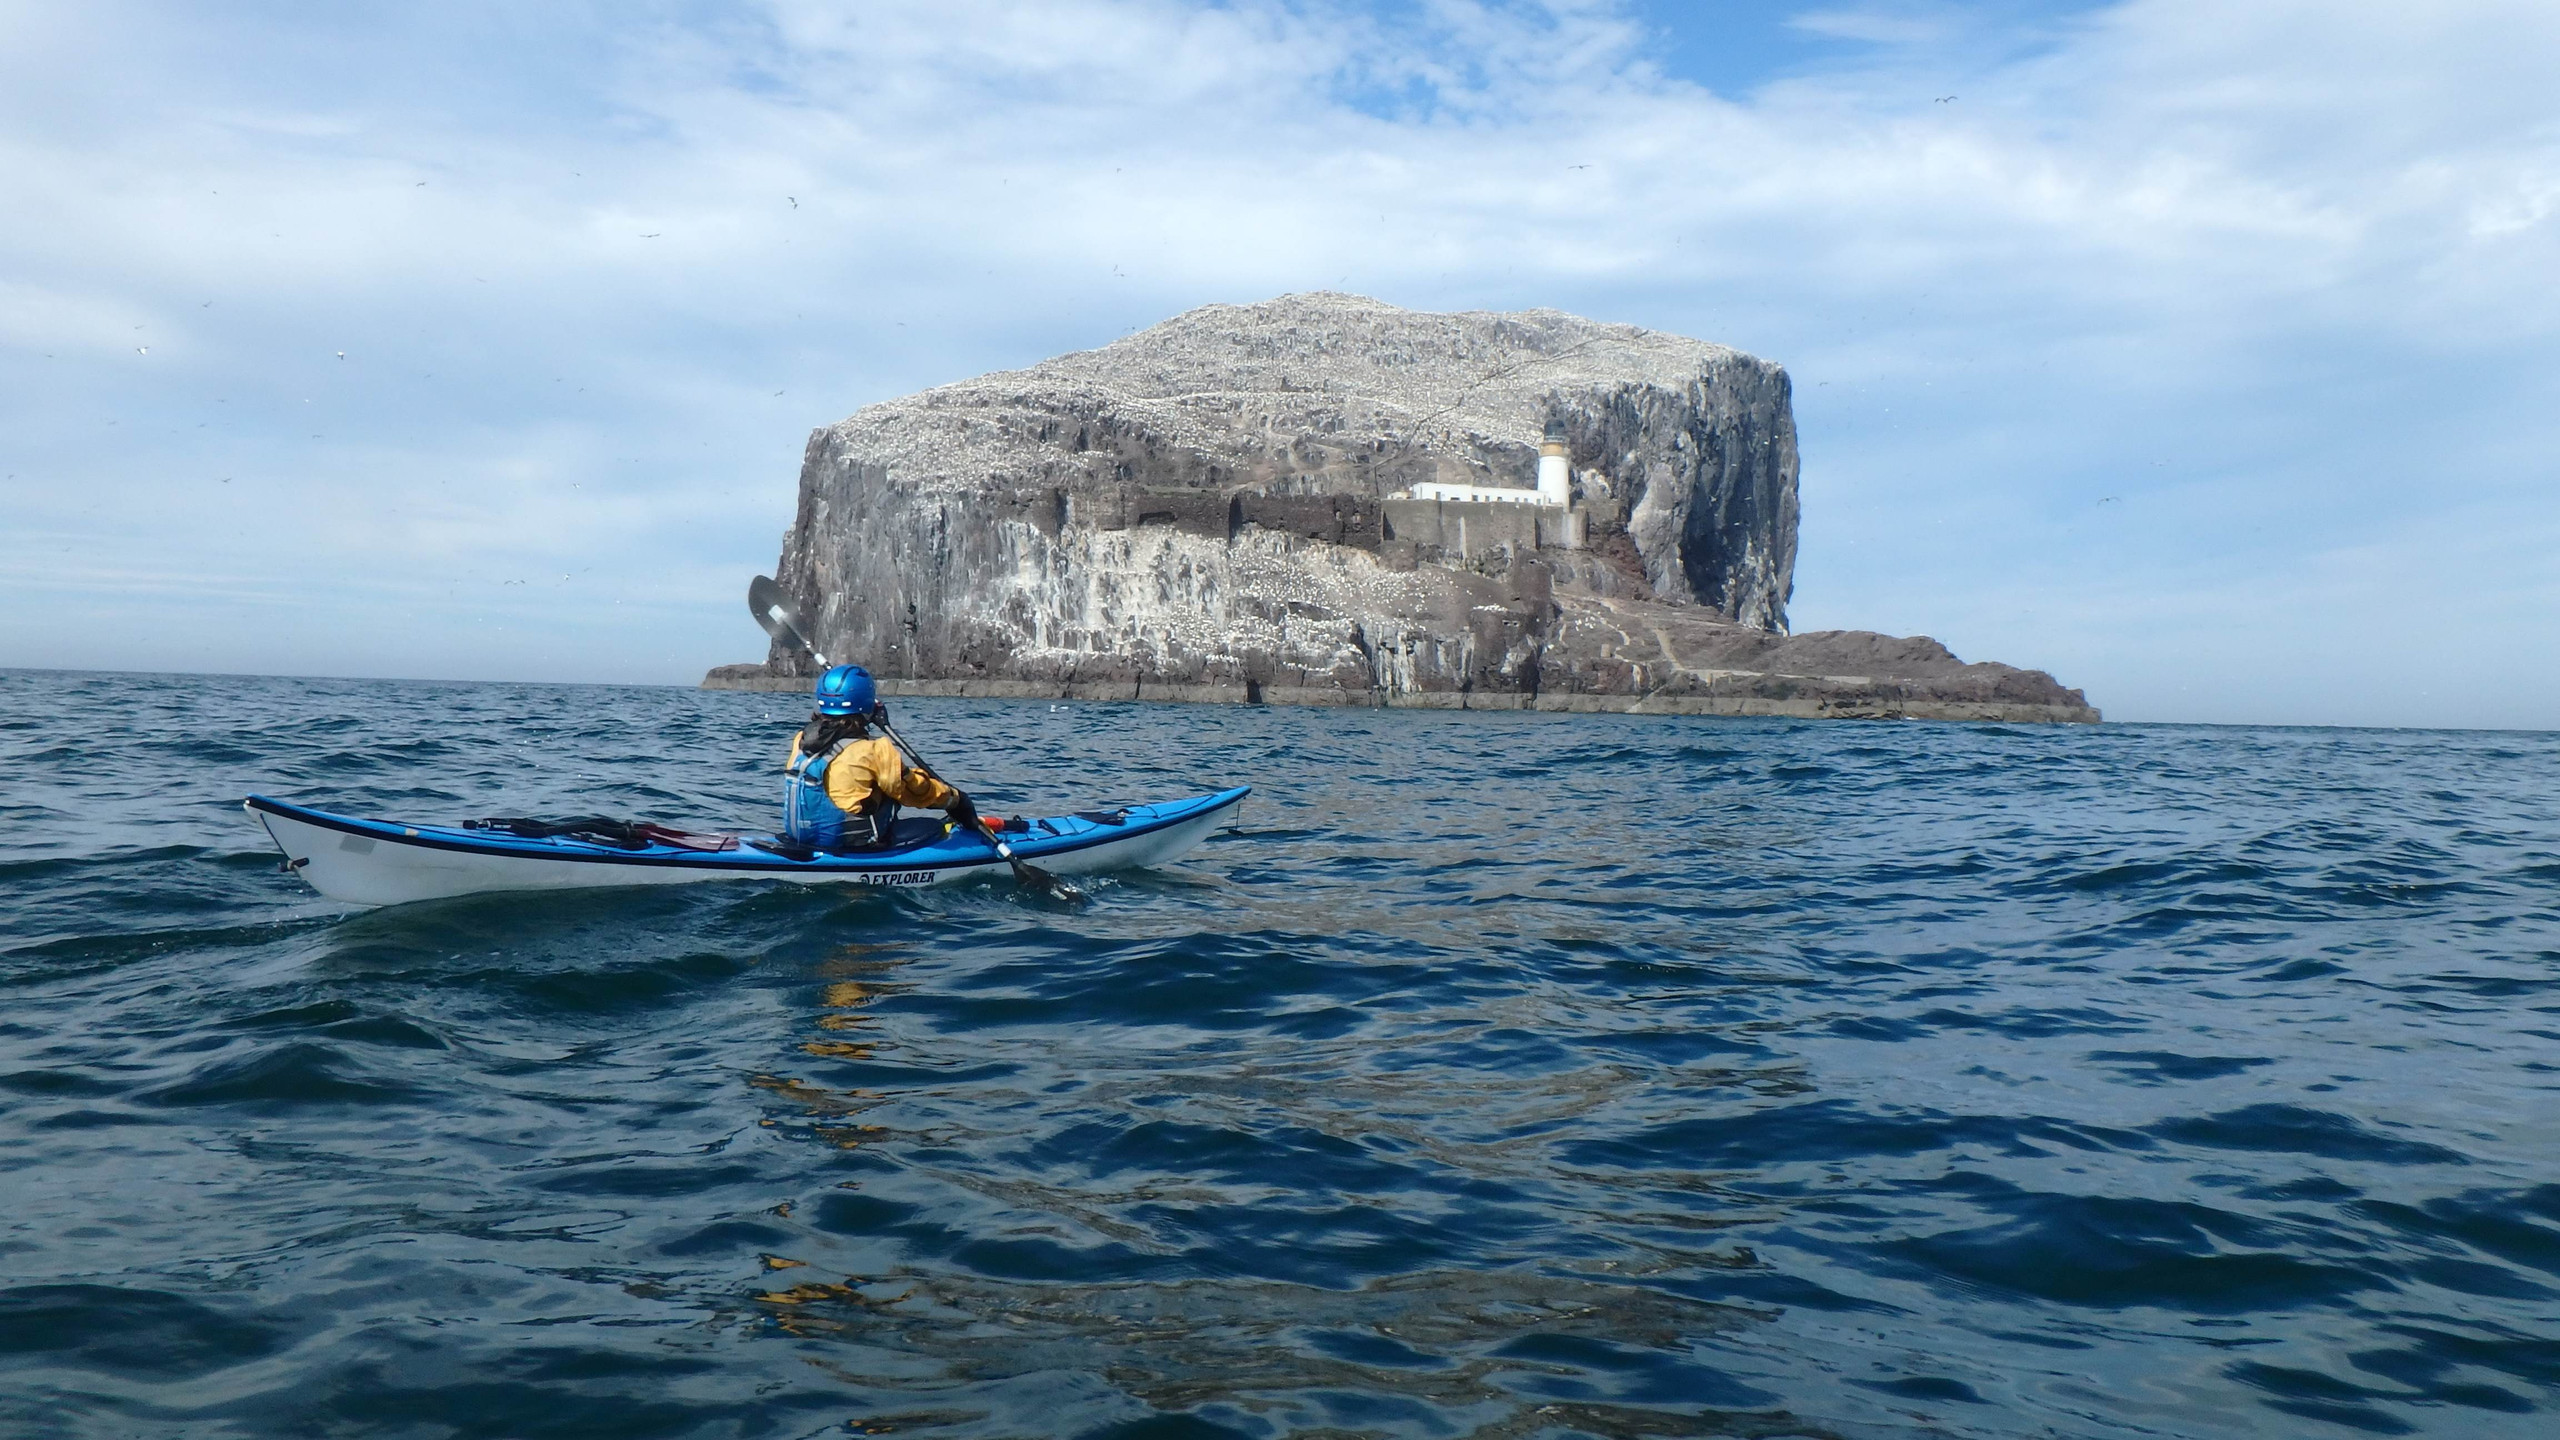 Getting closer to Bass Rock